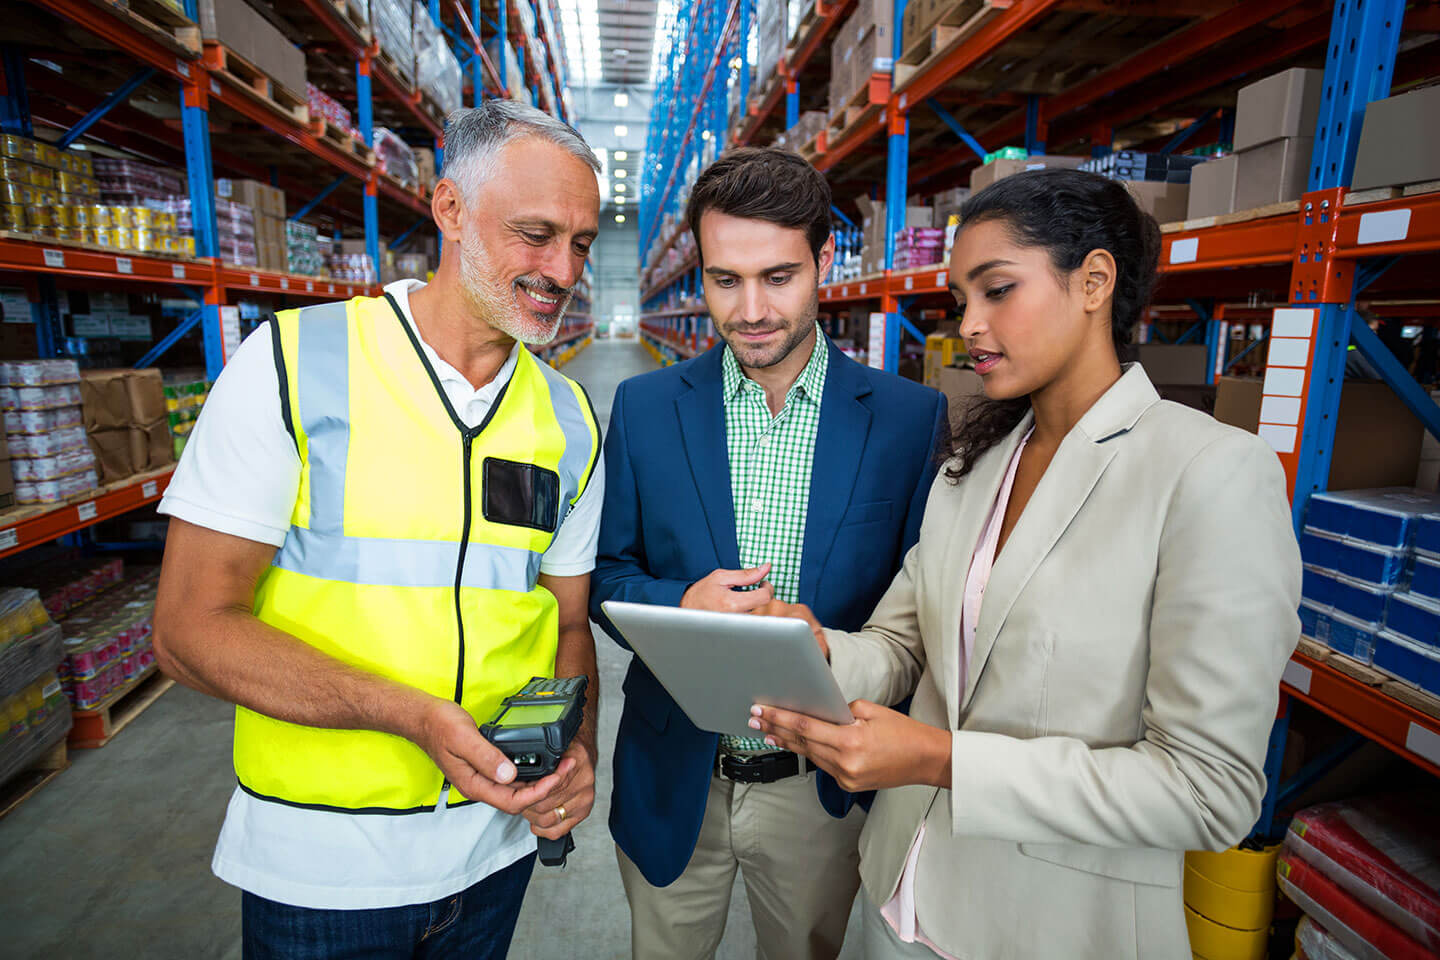 Big warehouse with people using wireless devices